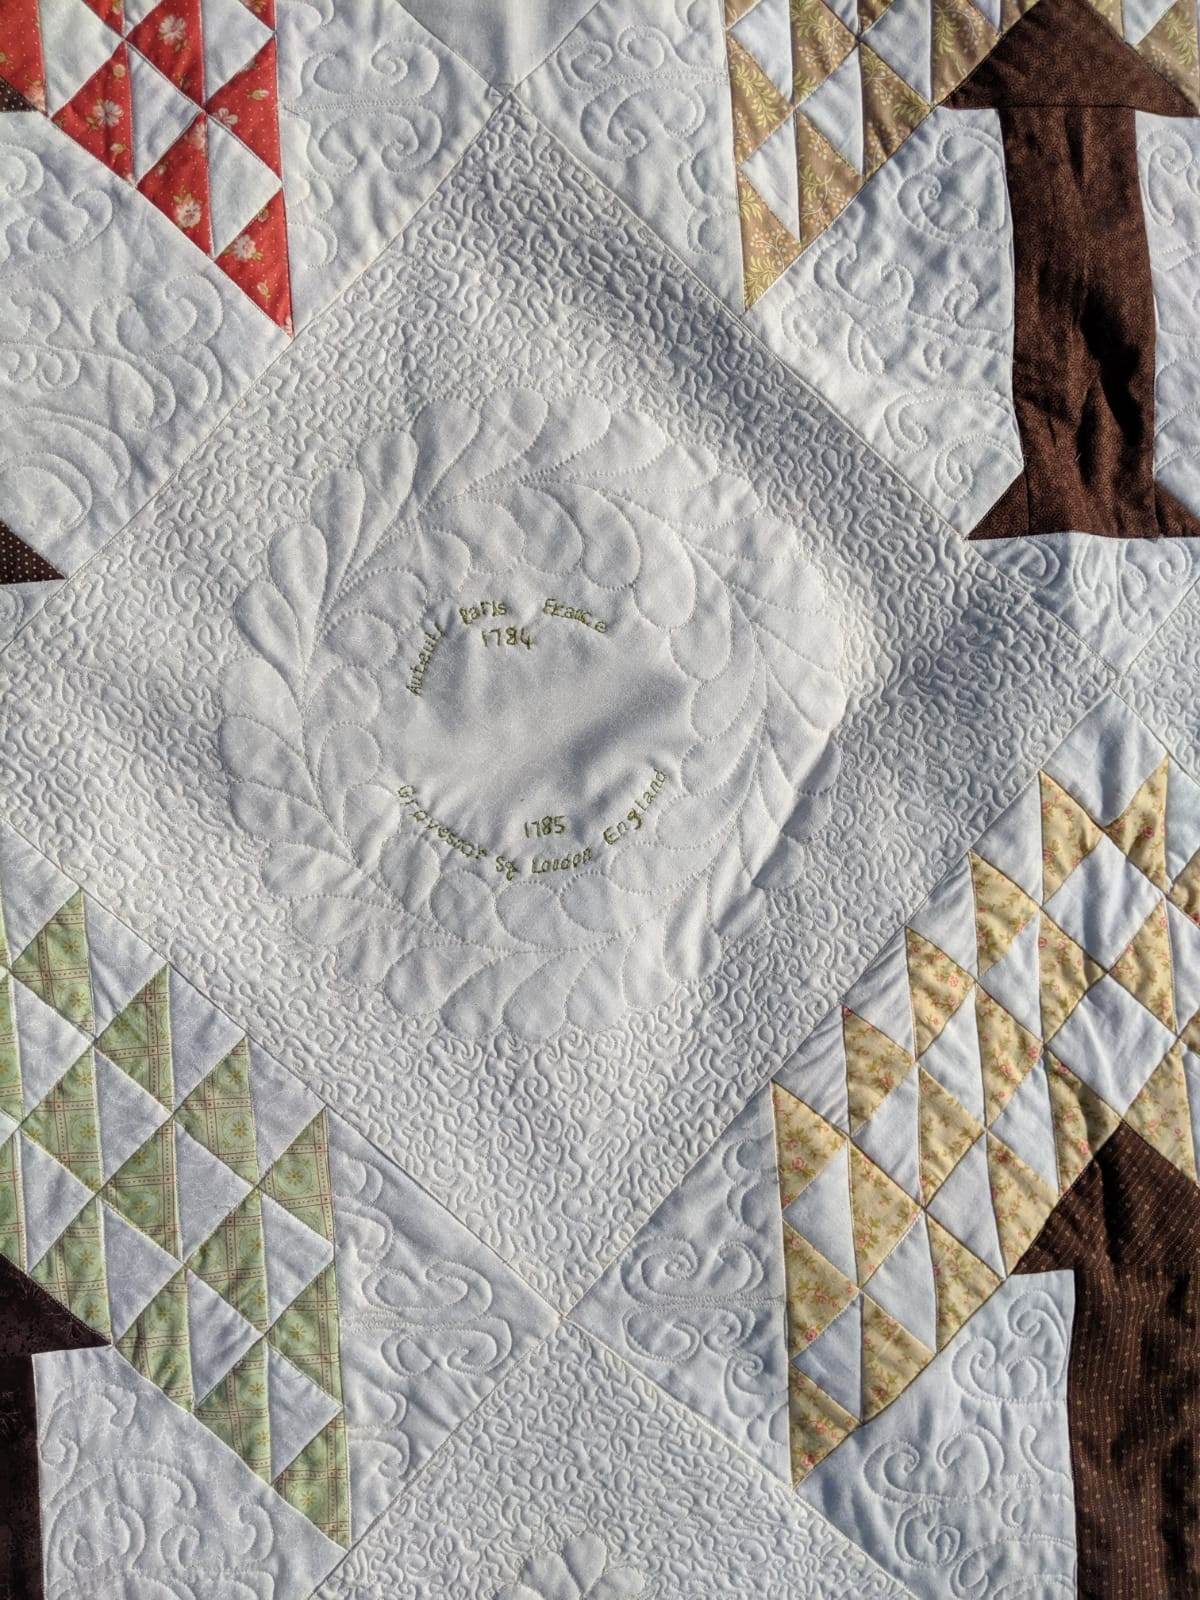 Hand quilted feathers.jpg